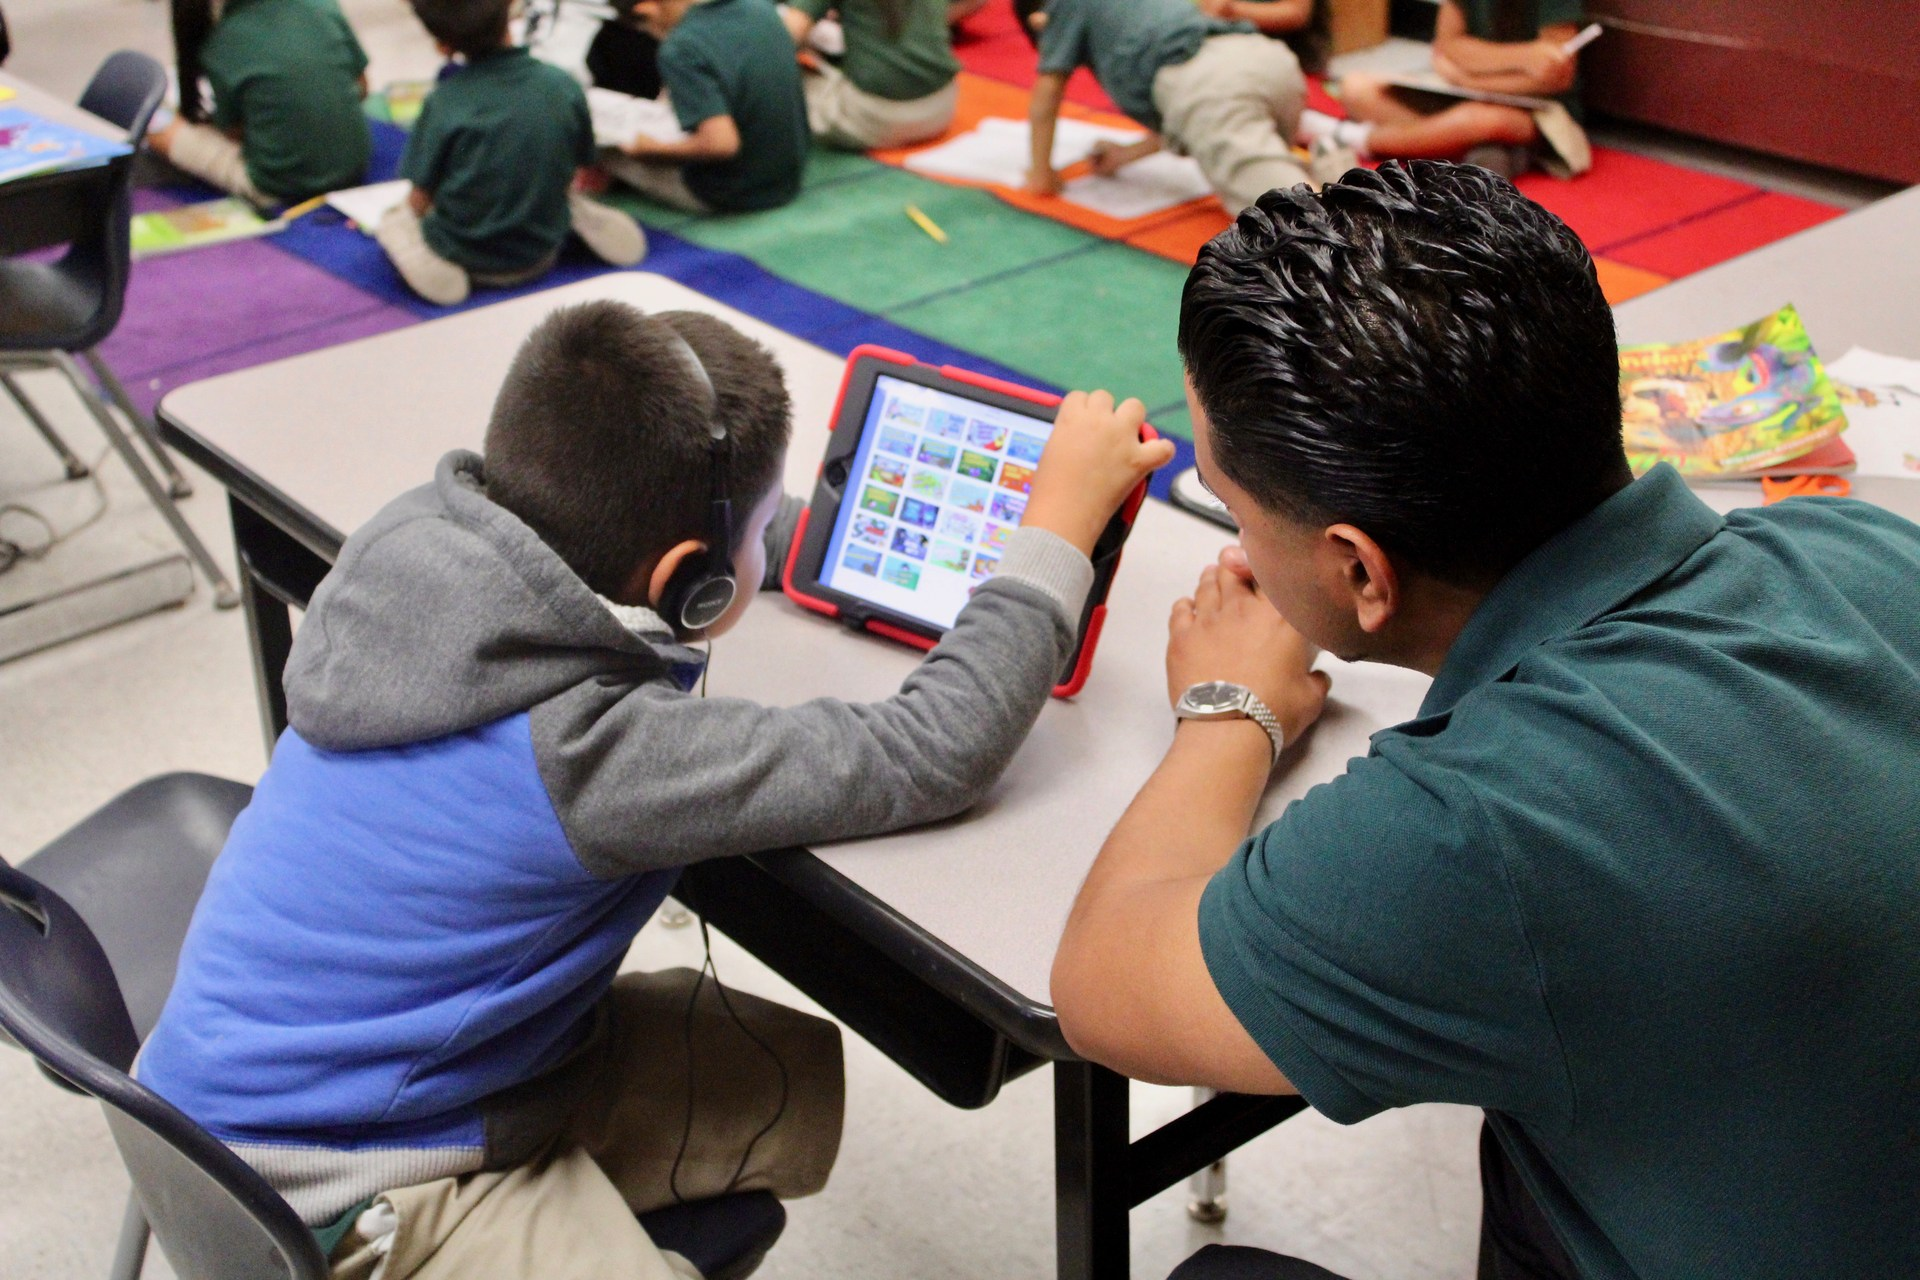 Tutor helps student with reading lesson on iPad